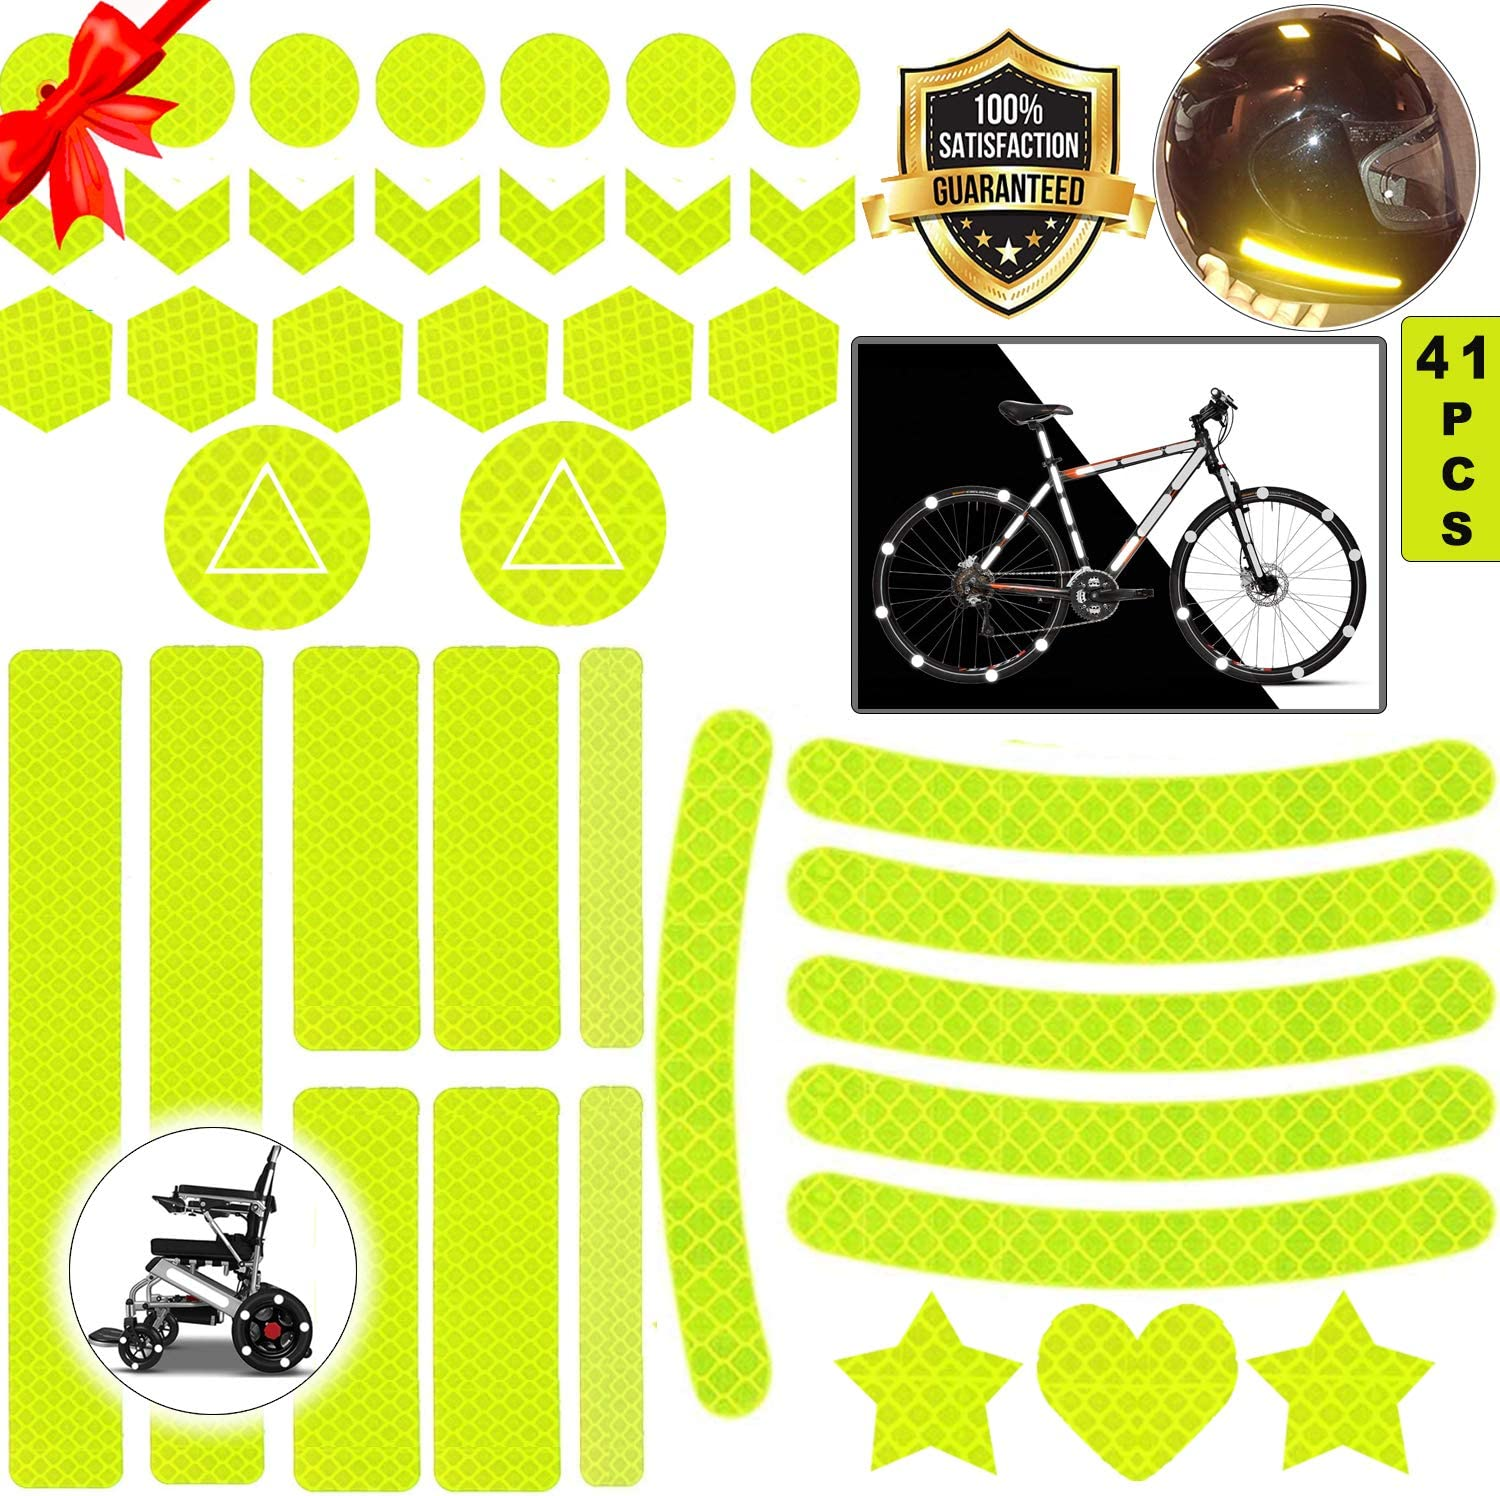 yellow reflective stickers for bikes,reflective decals,reflective stickers for cycling and helmets,reflective stickers set